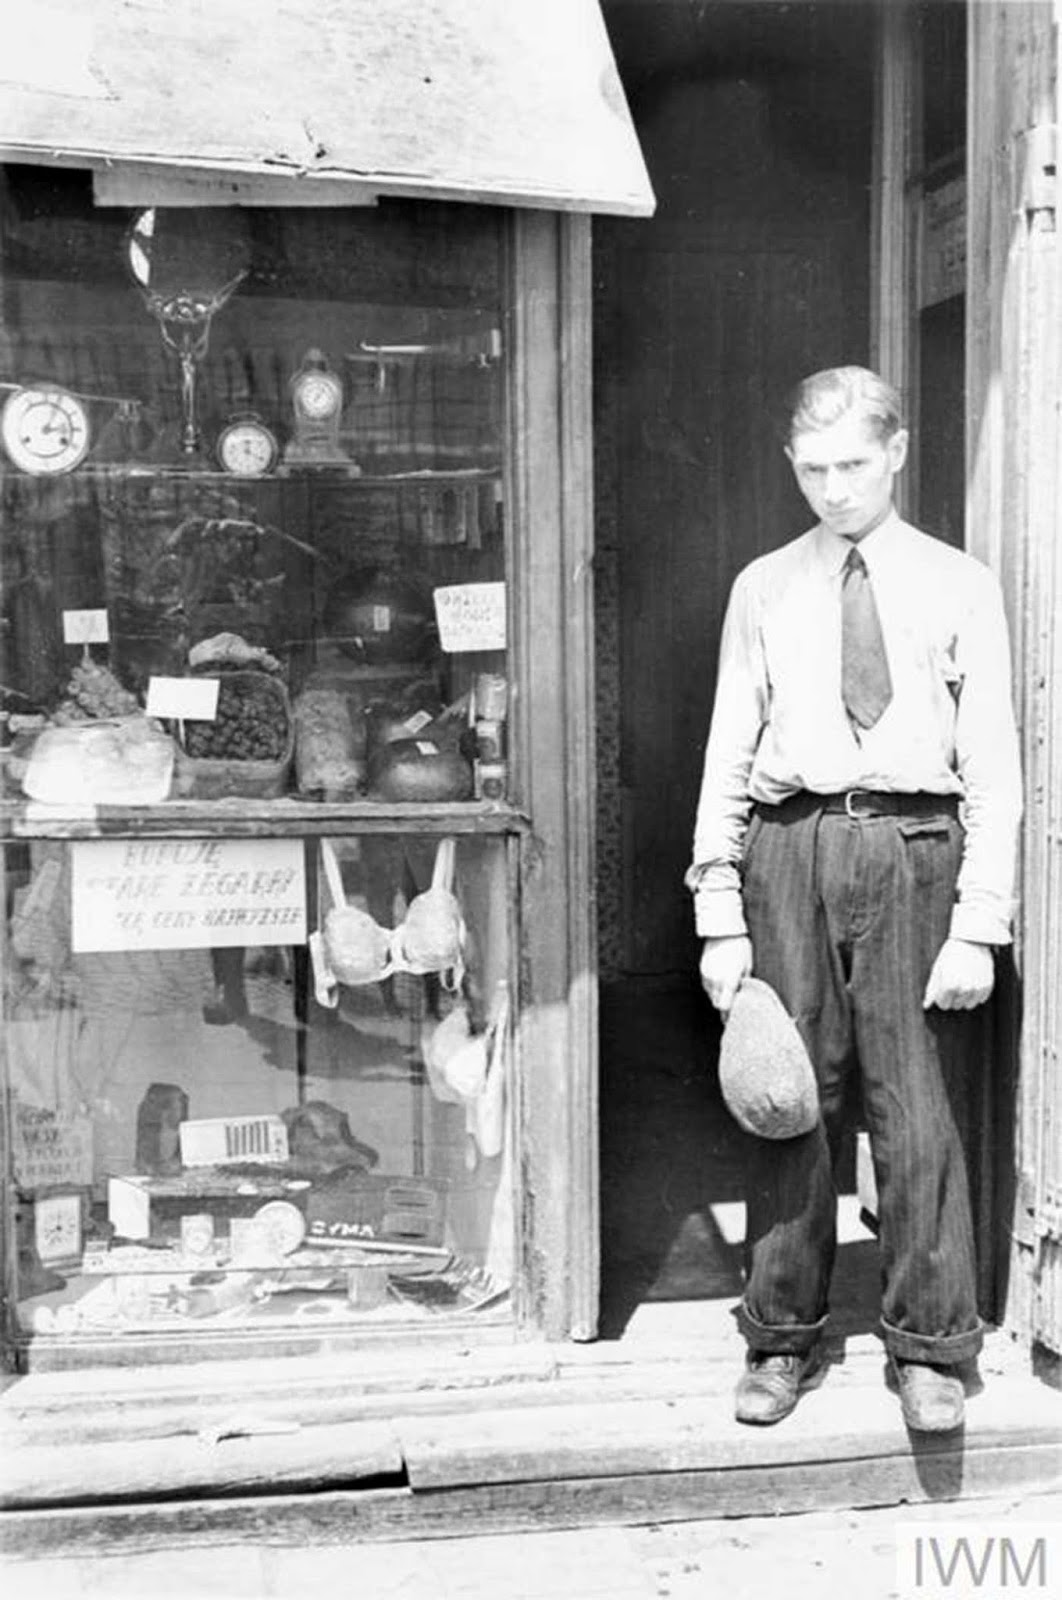 A young man in the doorway of a shop in the ghetto. Note he has taken his hat off to comply with the German order to remove headwear in the presence of German personnel. The shop offers fresh eggs, sweets and watches. The sign in the window reads -